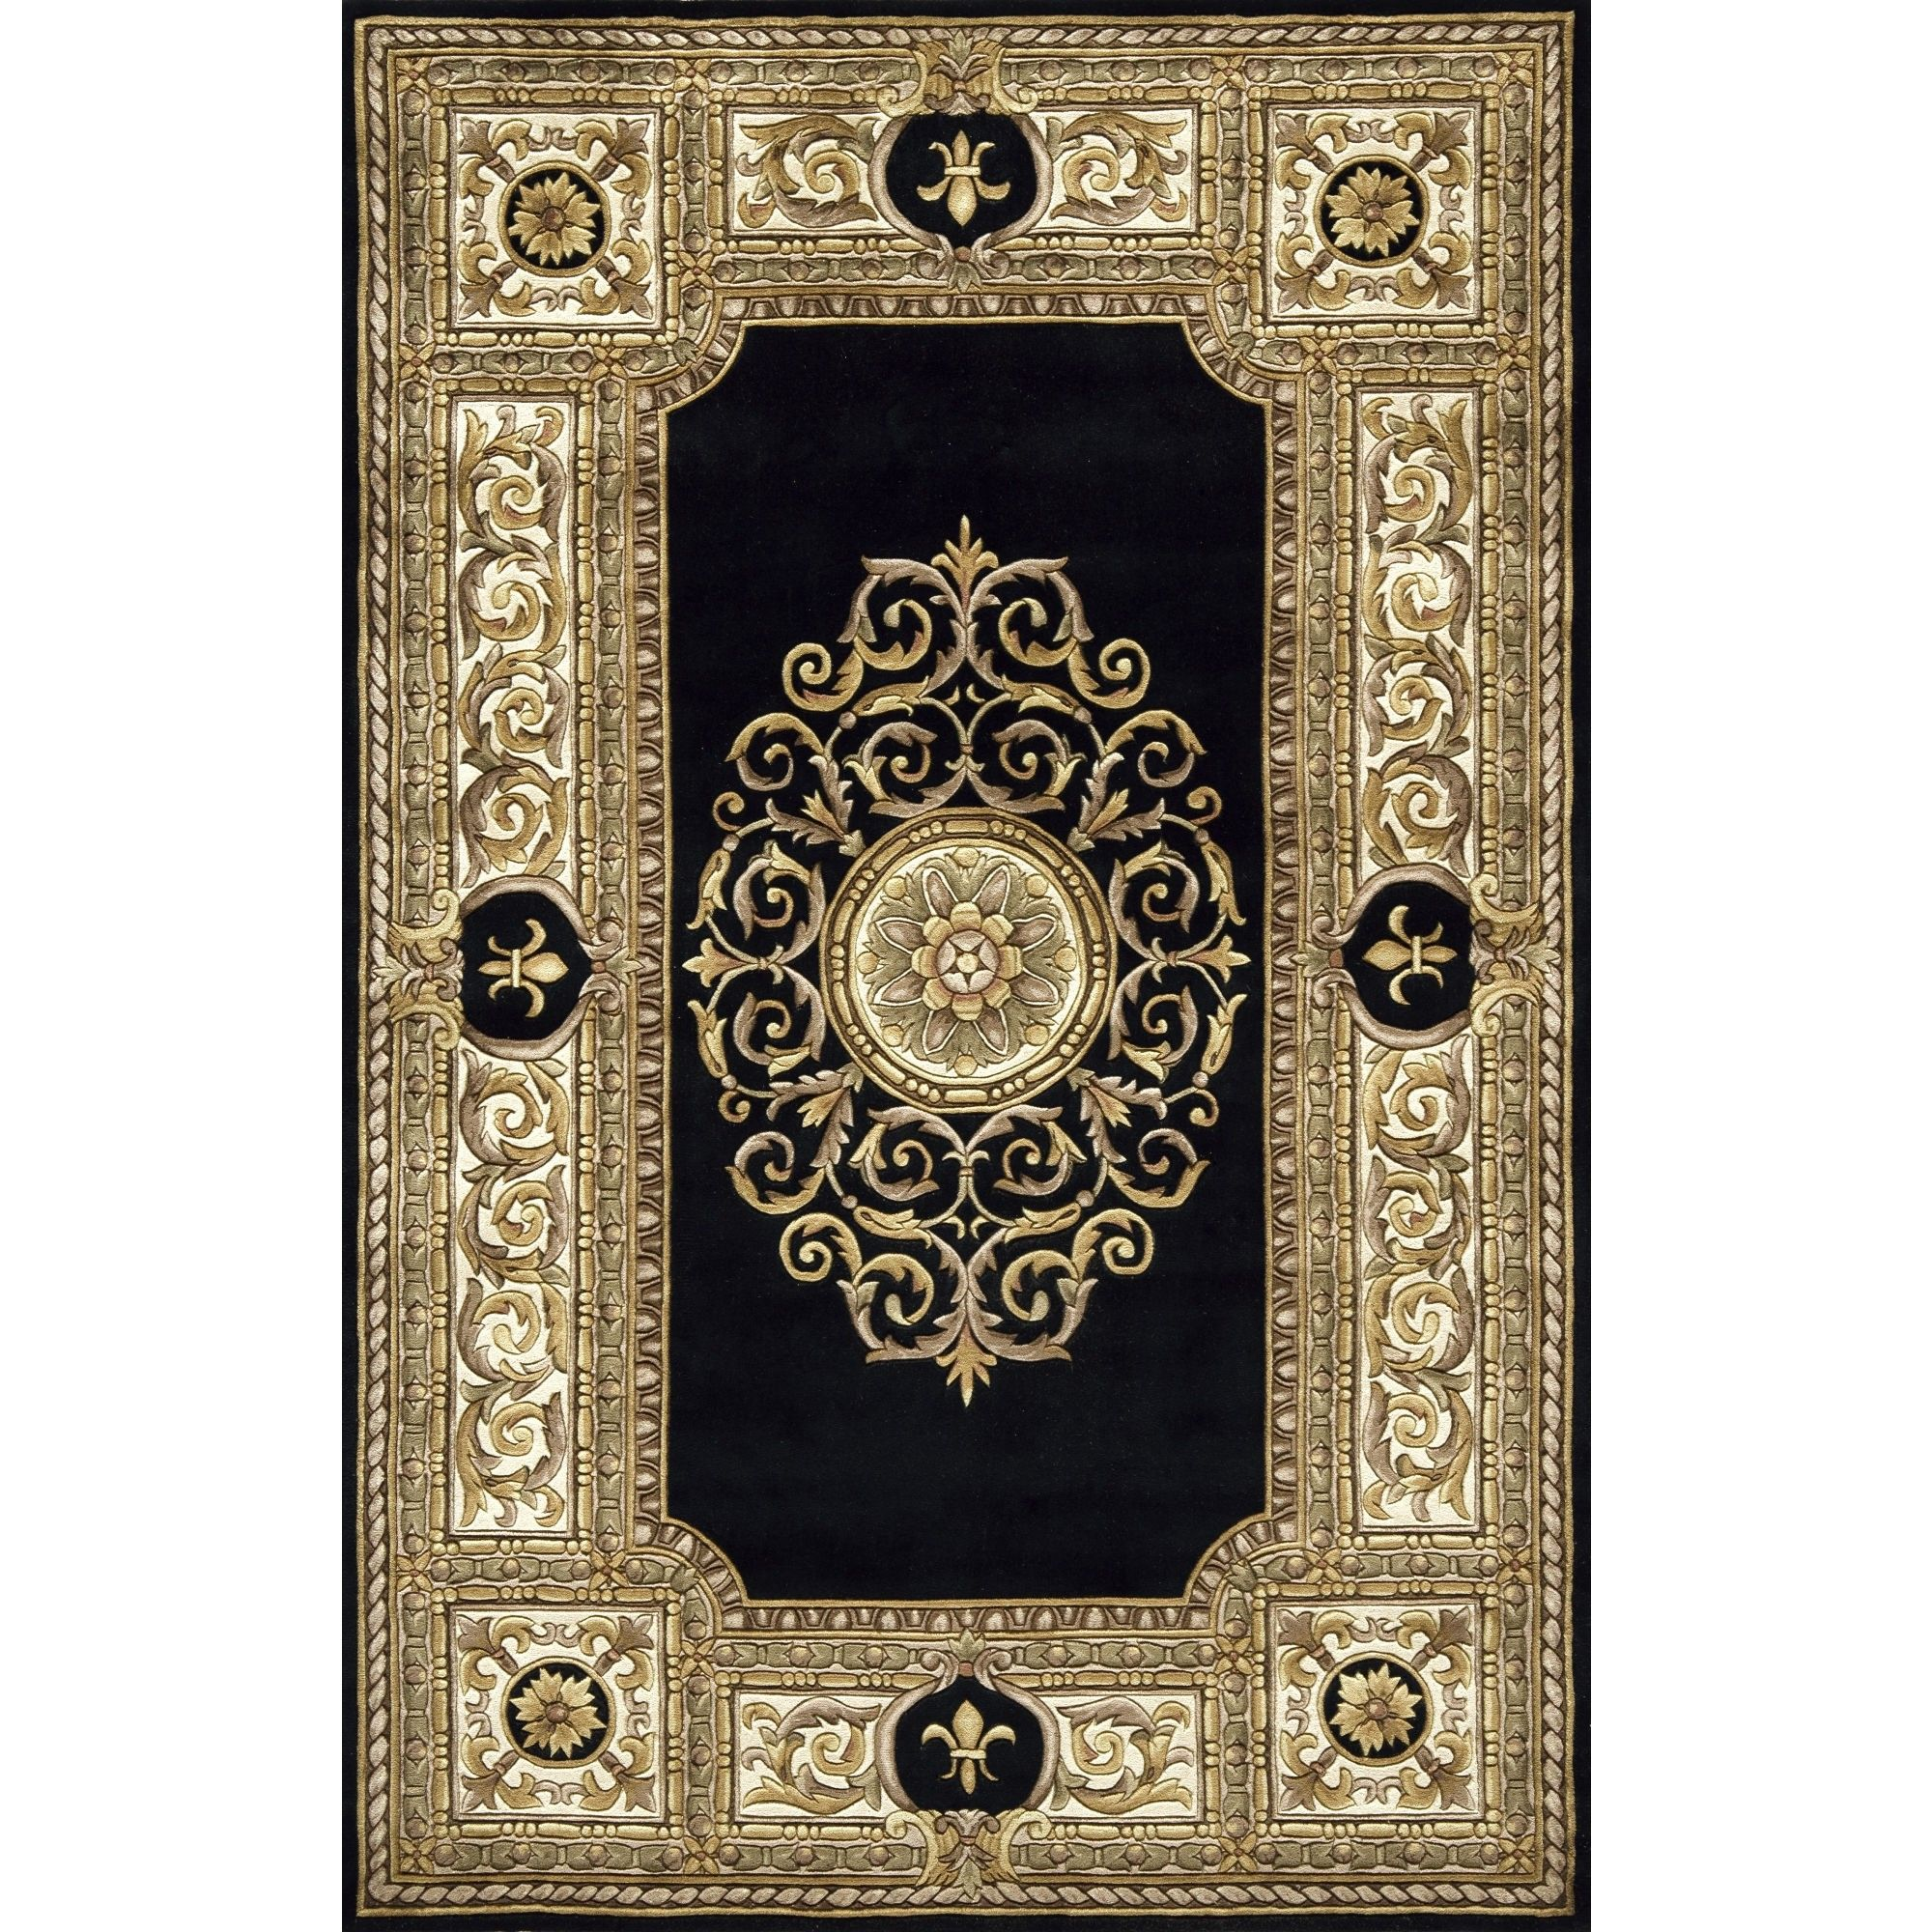 Character: Harrison Devaux Prefers This Kind Of Persian Rug, Dark With  Blacks, Browns